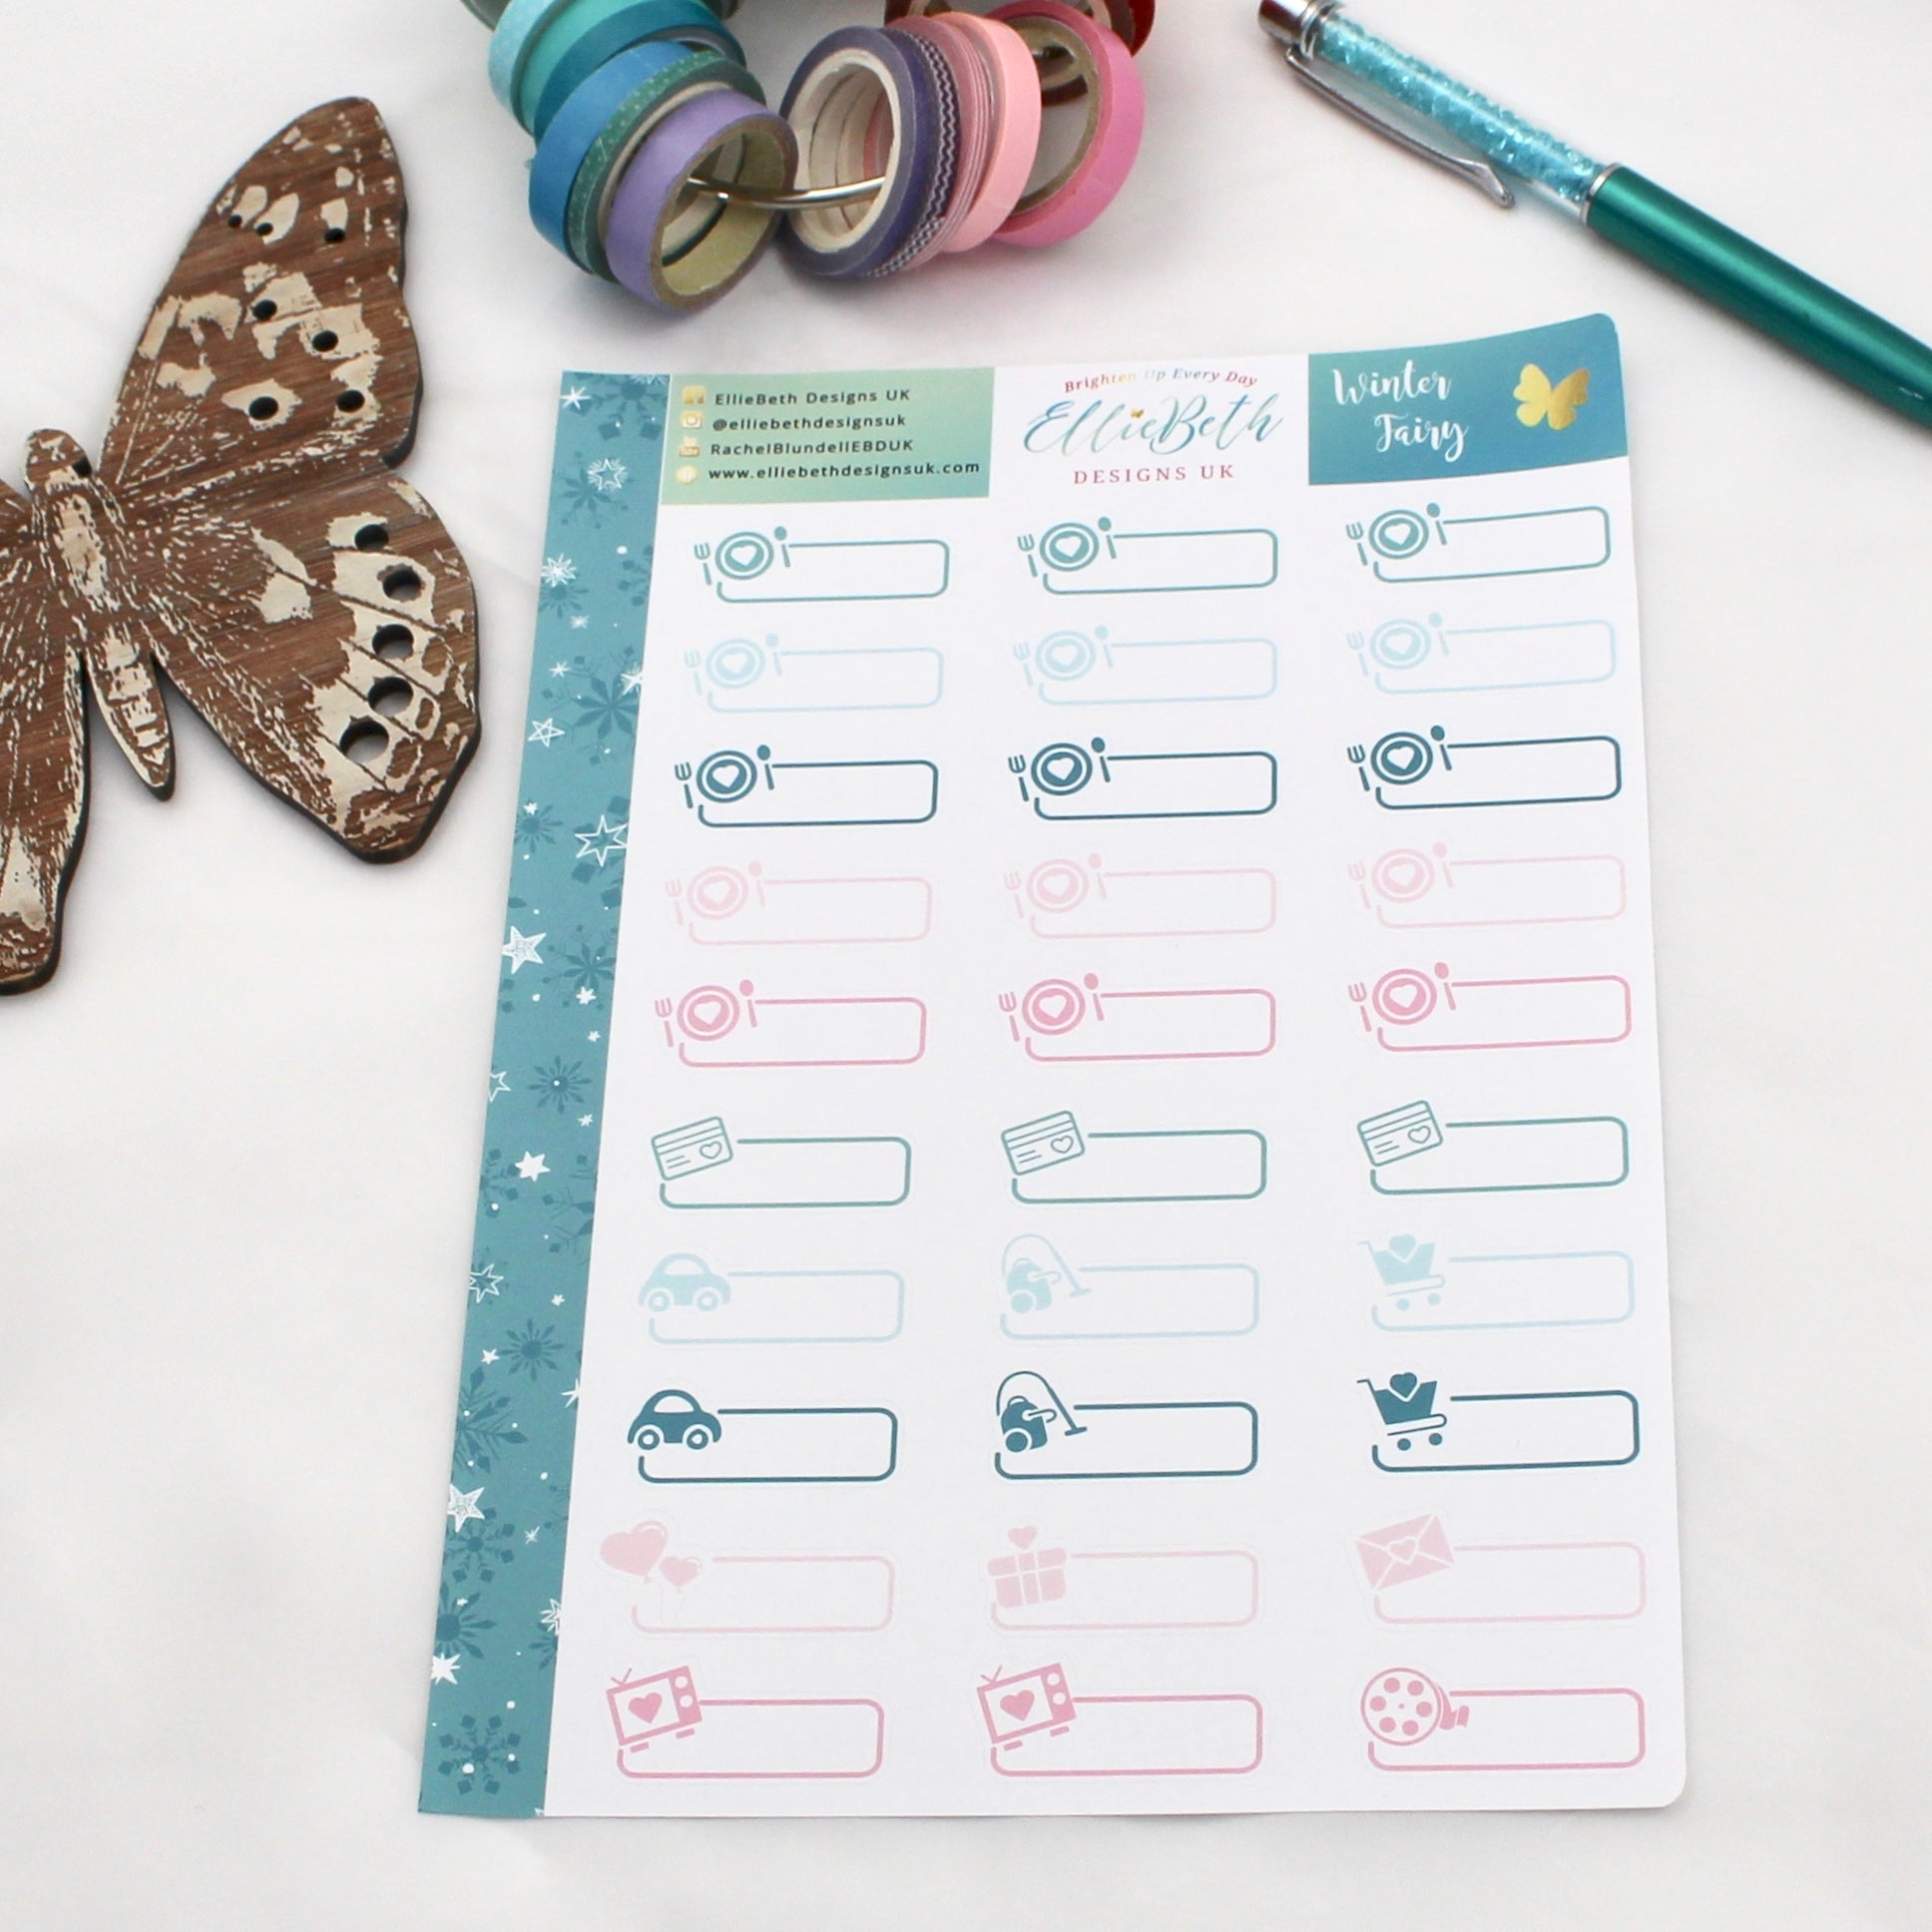 'Winter Fairy' - Day to Day Labels -  A5 binder ready planner stickers